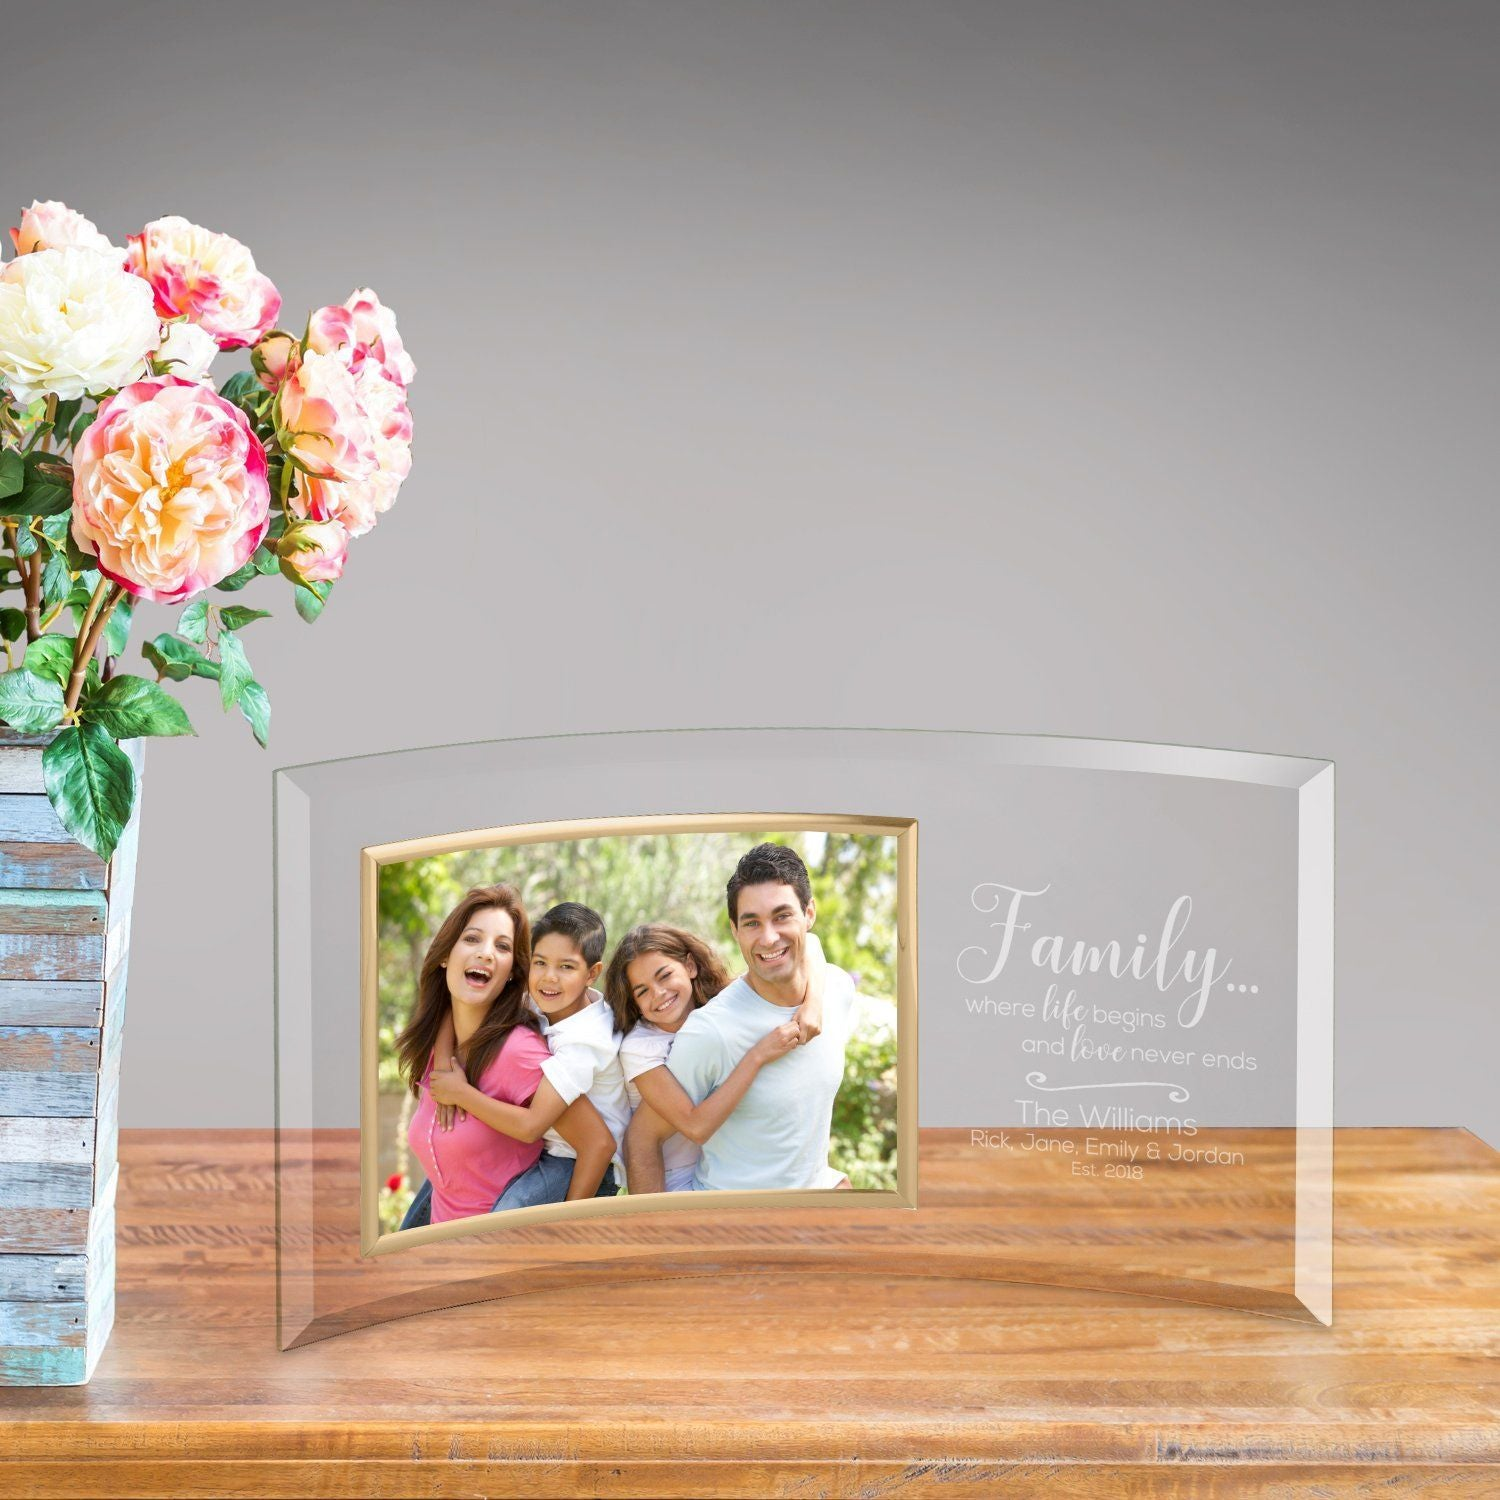 Personalized gifts engraved gifts monogrammed gifts save 25 personalized family love glass photo frame jeuxipadfo Image collections